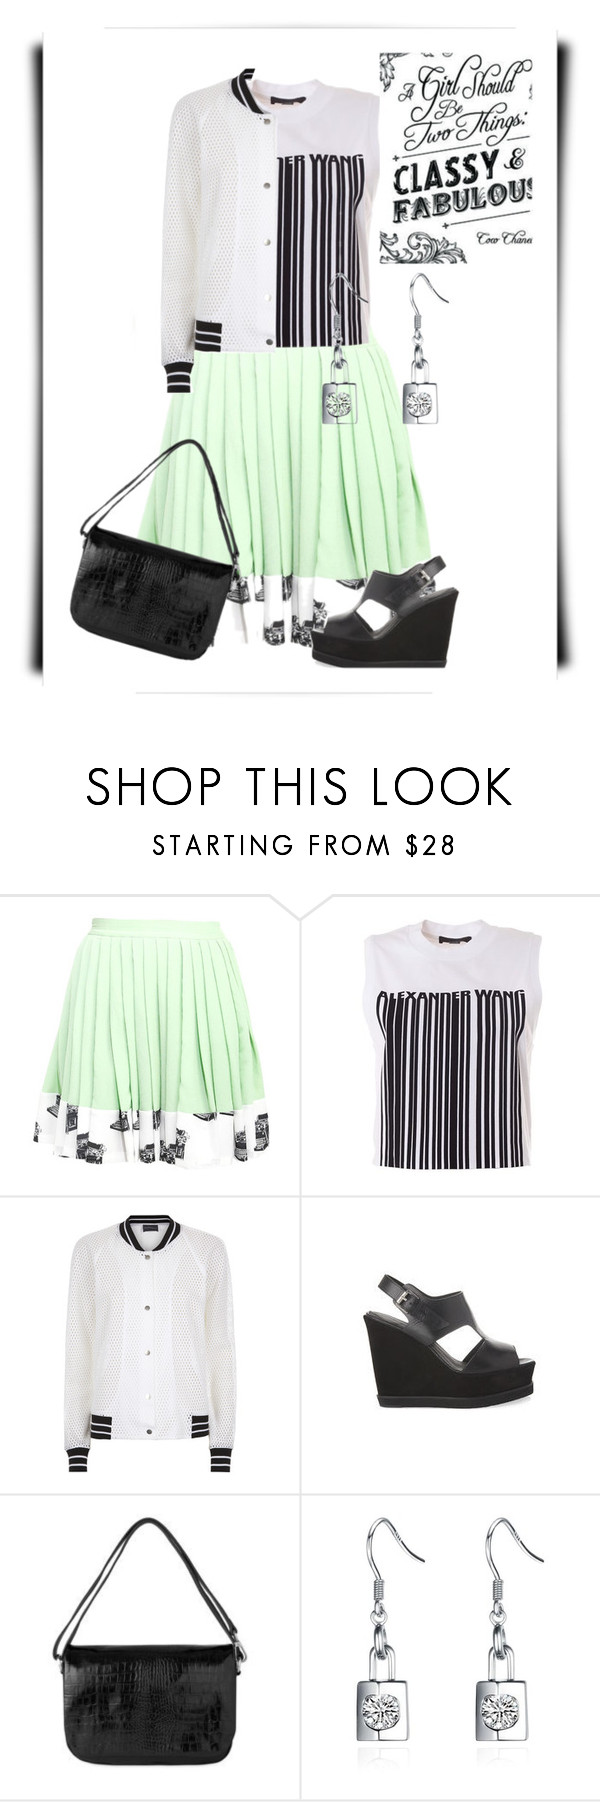 """""""classy and smart"""" by peeweevaaz ❤ liked on Polyvore featuring Masaba, Alexander Wang, Antipodium, Chanel, officewear, polyvoreeditorial, polyvorefashion and PolyPower"""